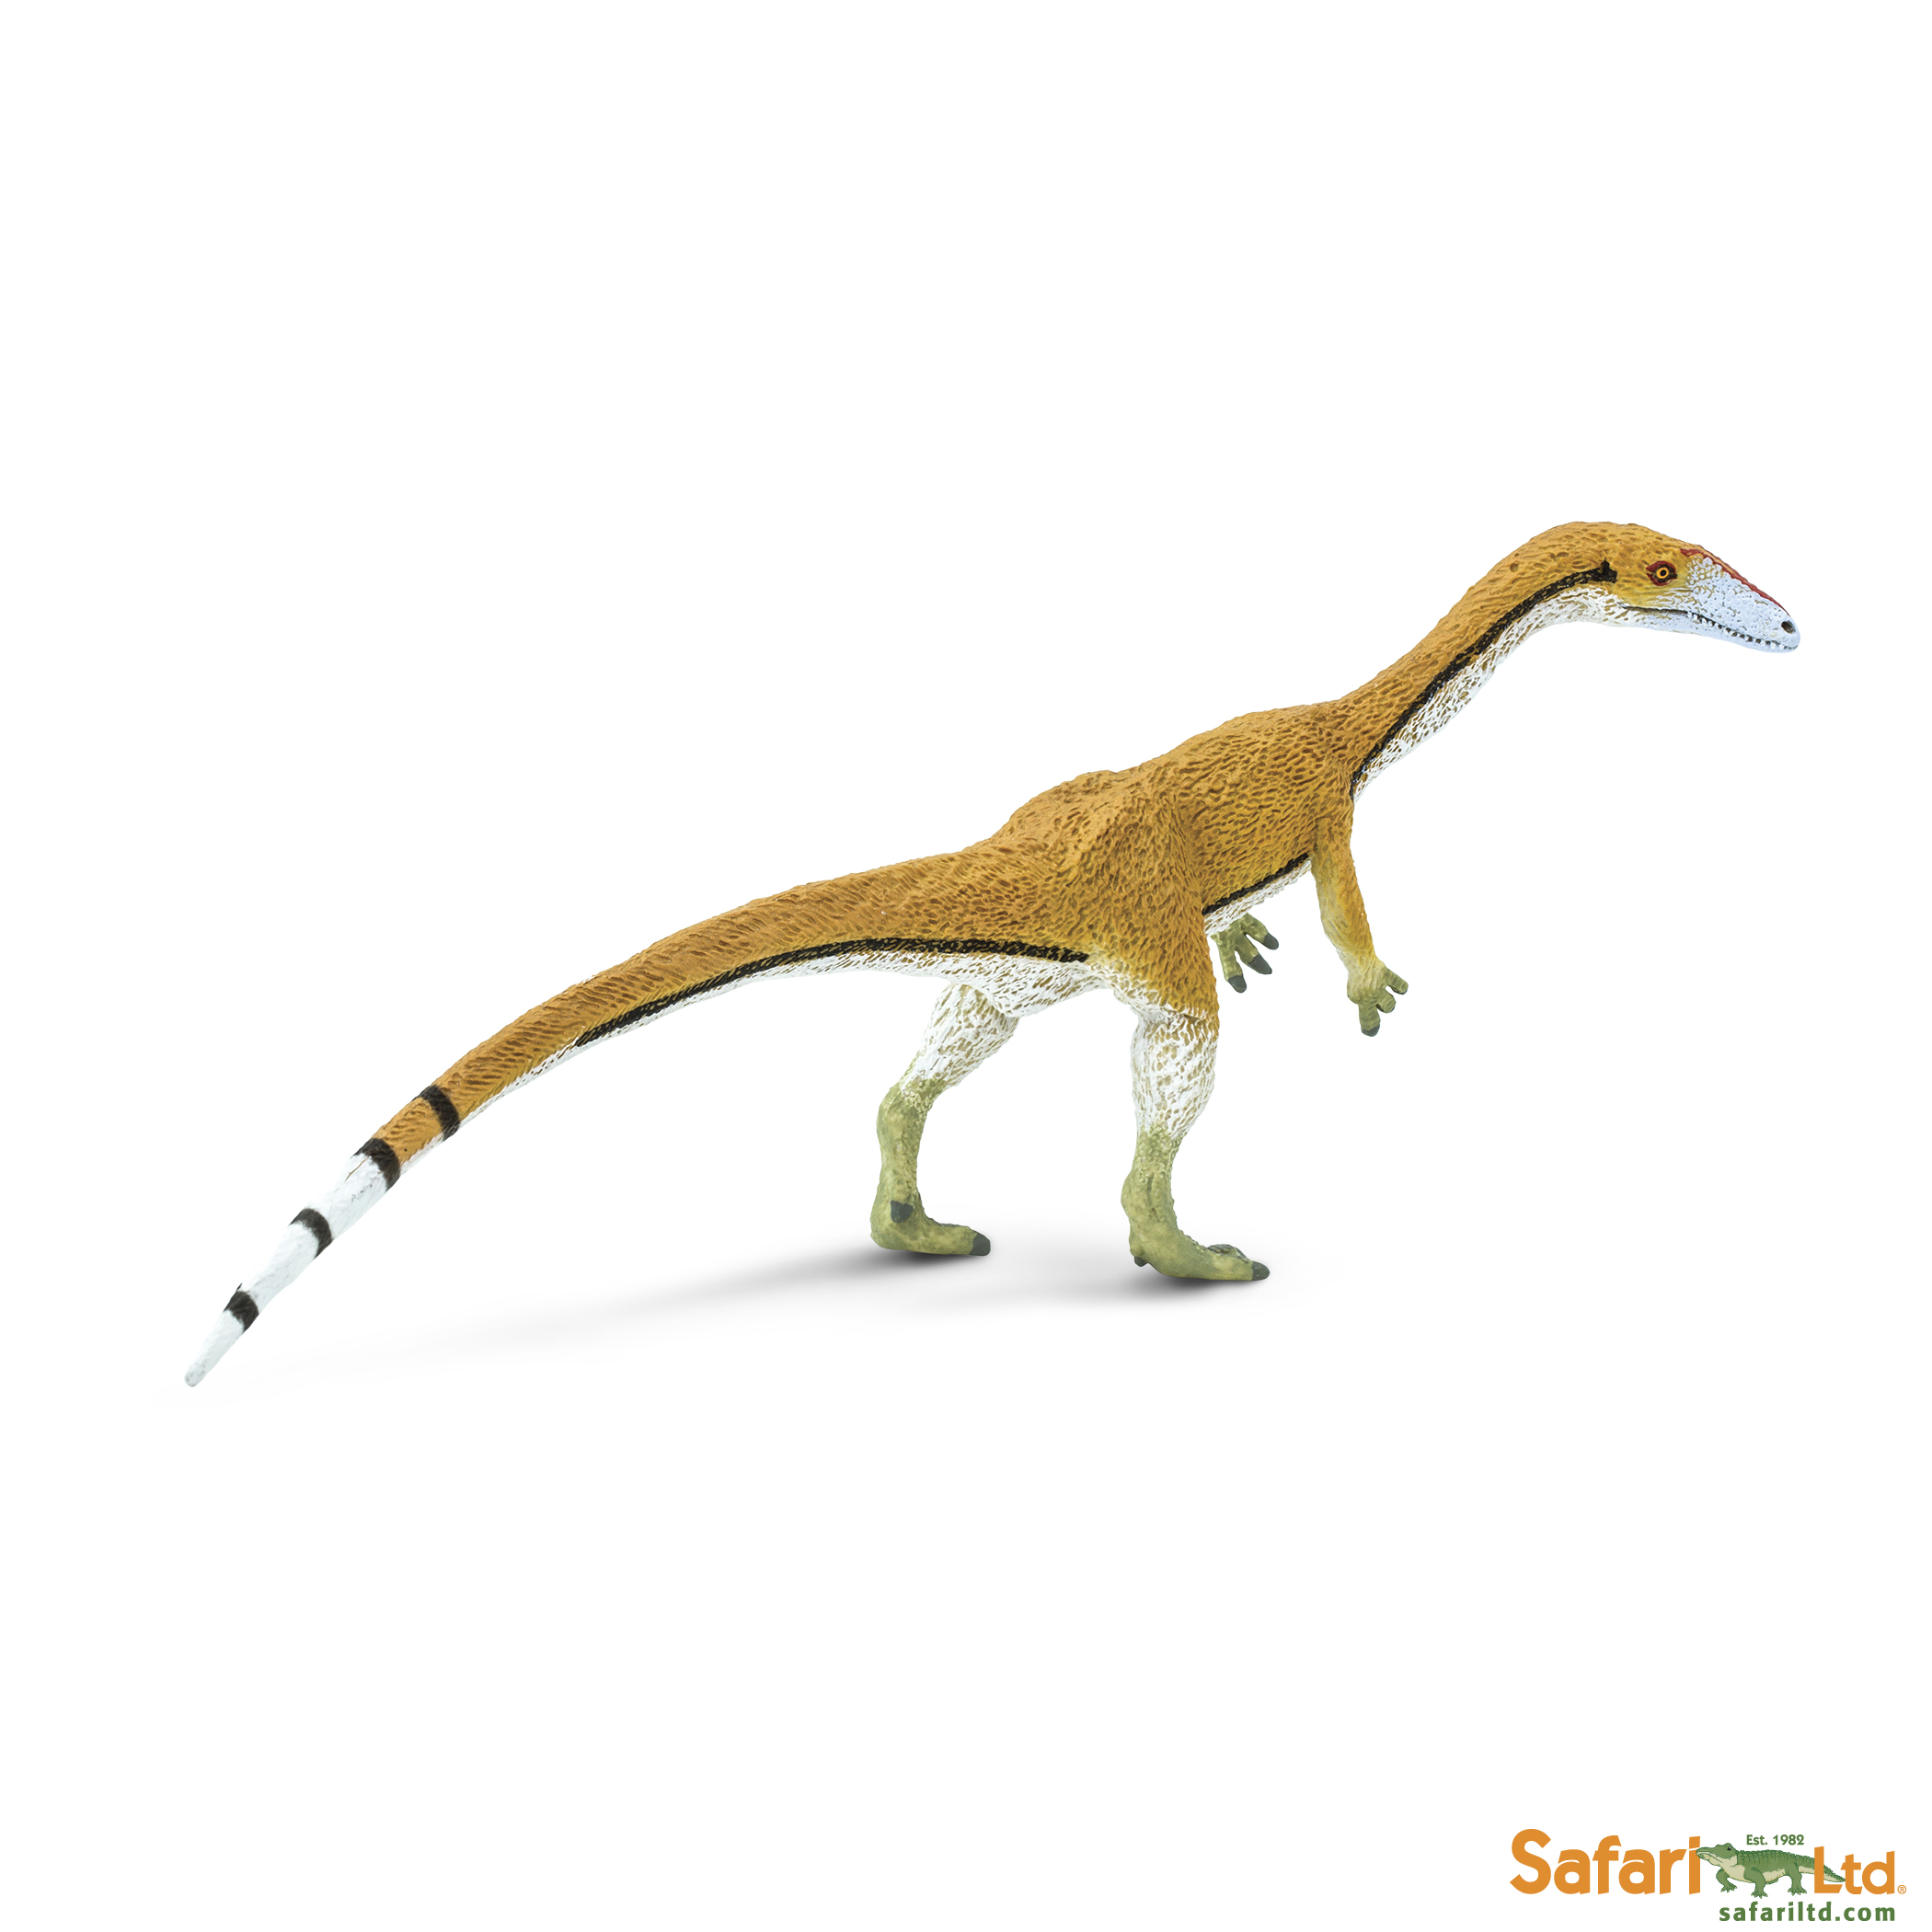 Playtive Küche Ersatzteile Spielzeug Yutyrannus Dinosaur Toy Model By Safari Ltd 303529 *new With Tag* Triadecont.com.br